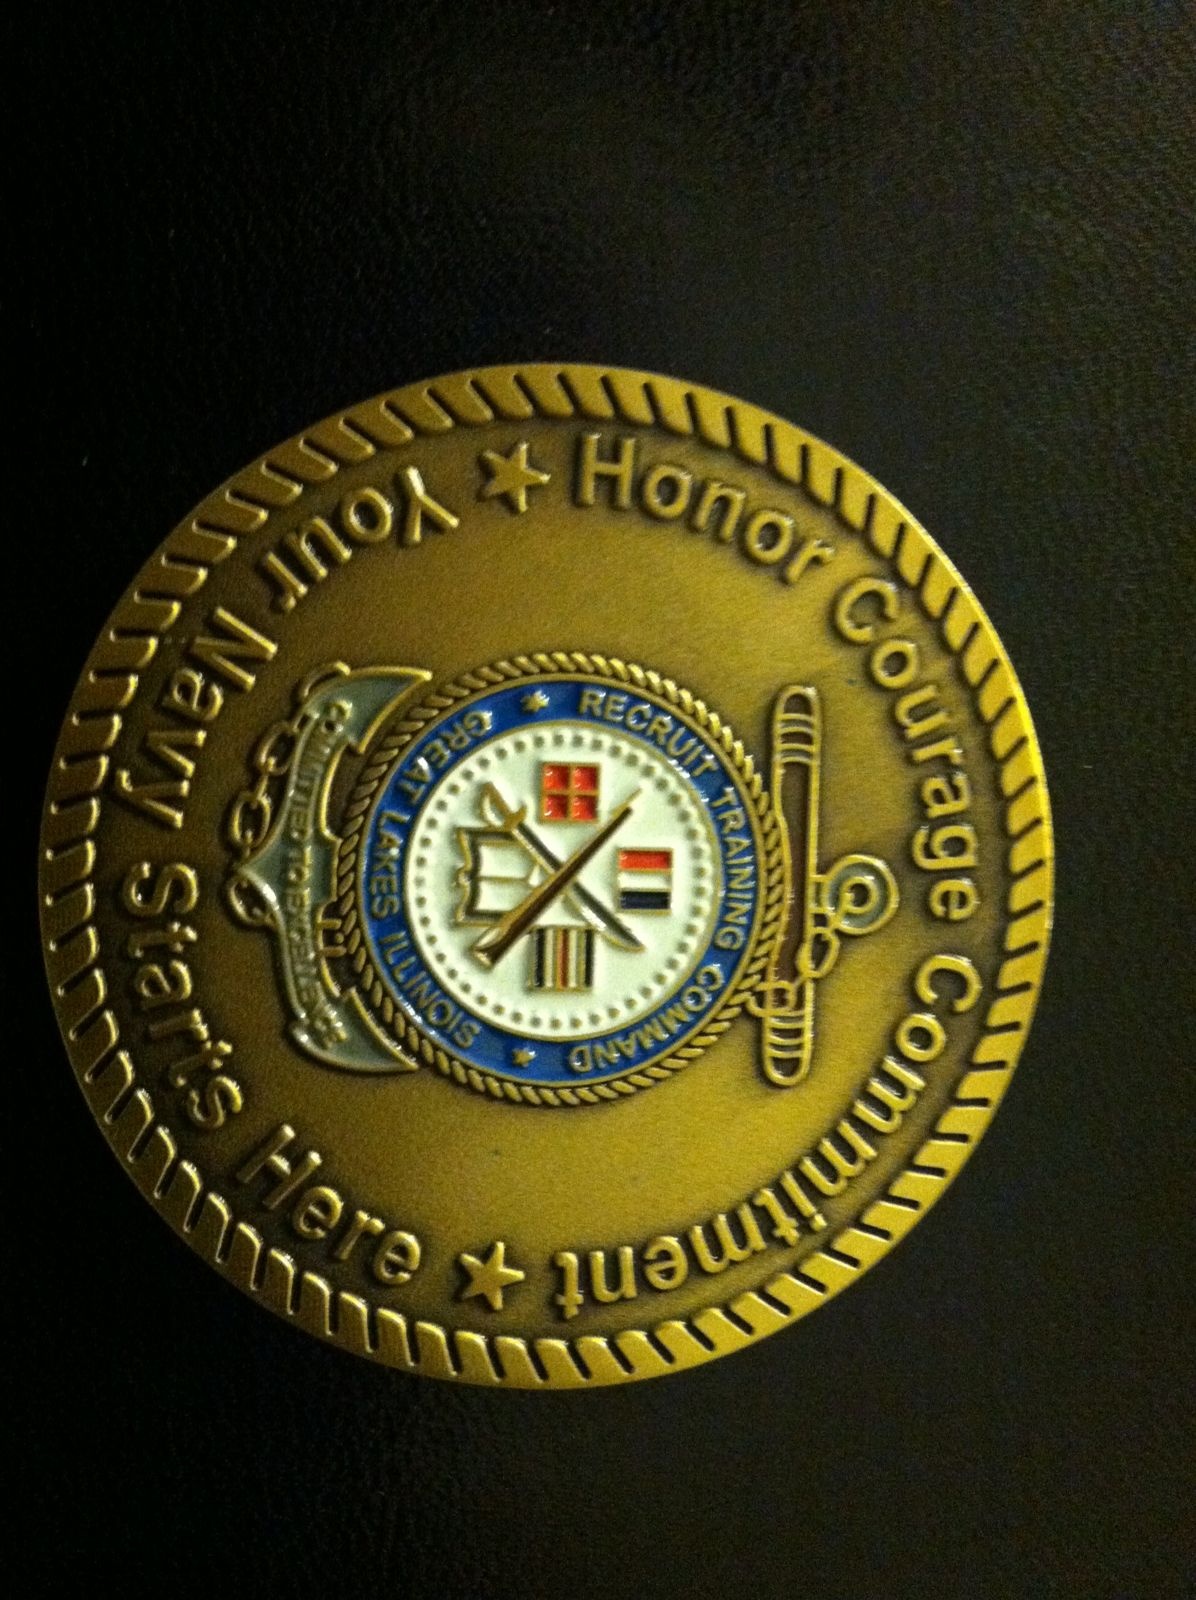 USN Challenge Coin that my Daughter recieved from the Base Commander for Graduating as her Division Honor Graduate!